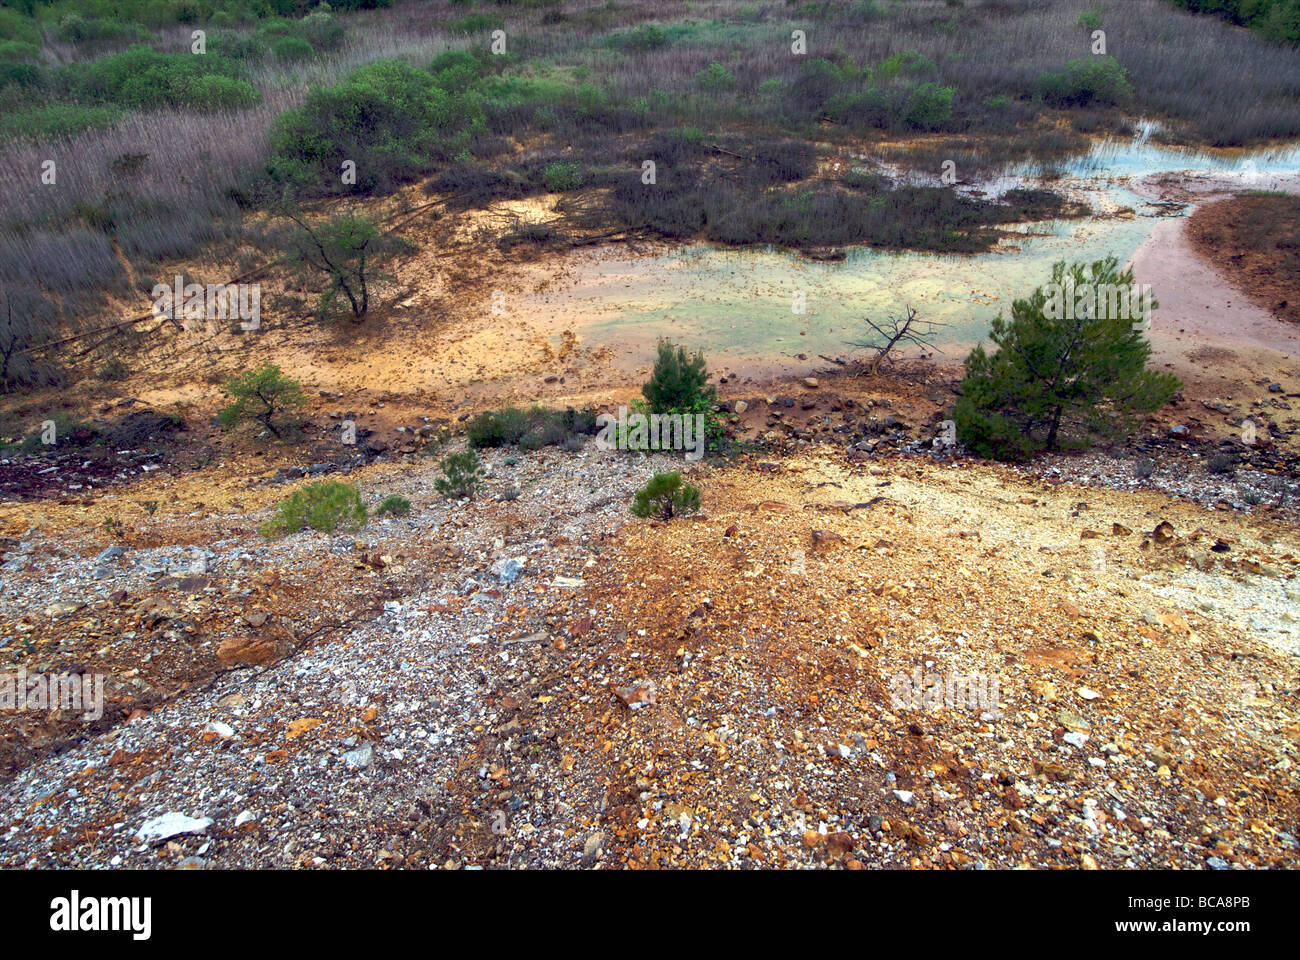 Colline Metallifere, Tuscany.  Area contaminated from mine waste - Stock Image